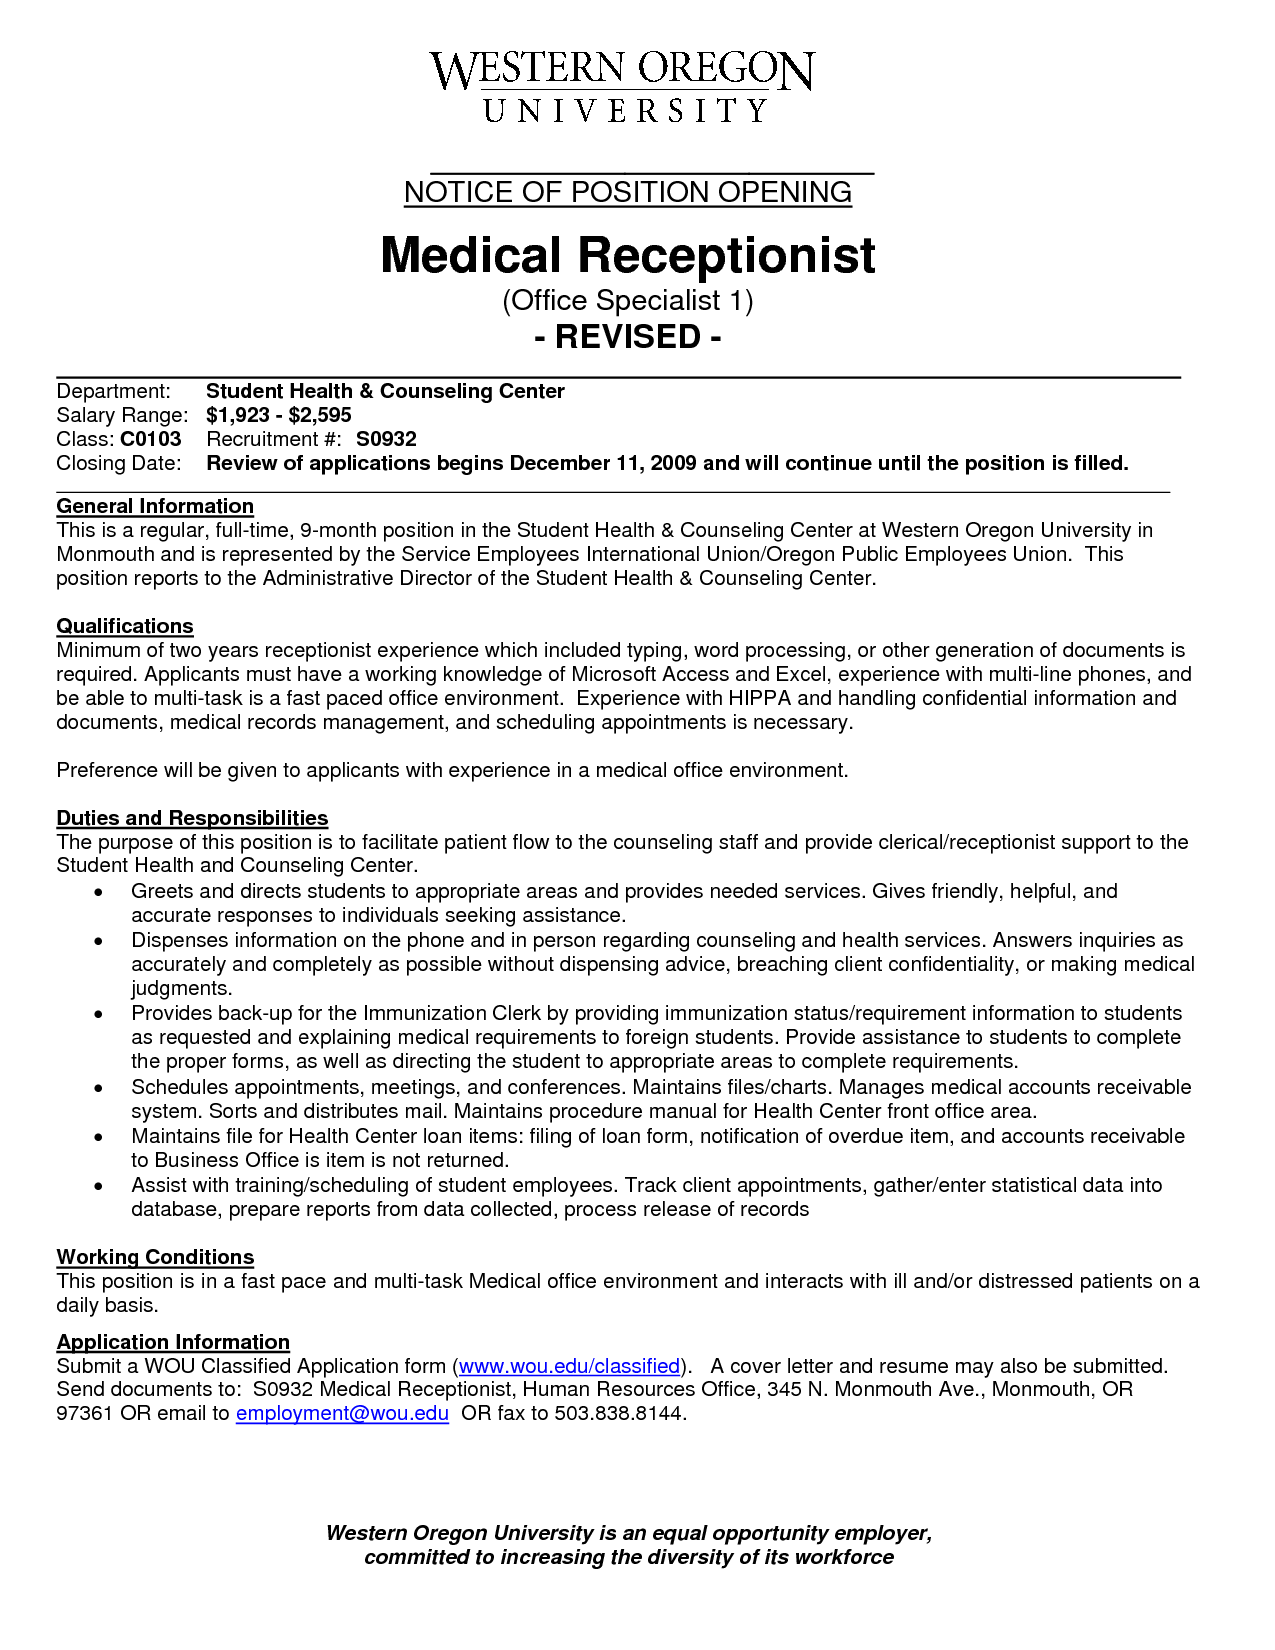 Receptionist Skills Resume Medical Receptionist Resume With No Experience  Httpwww